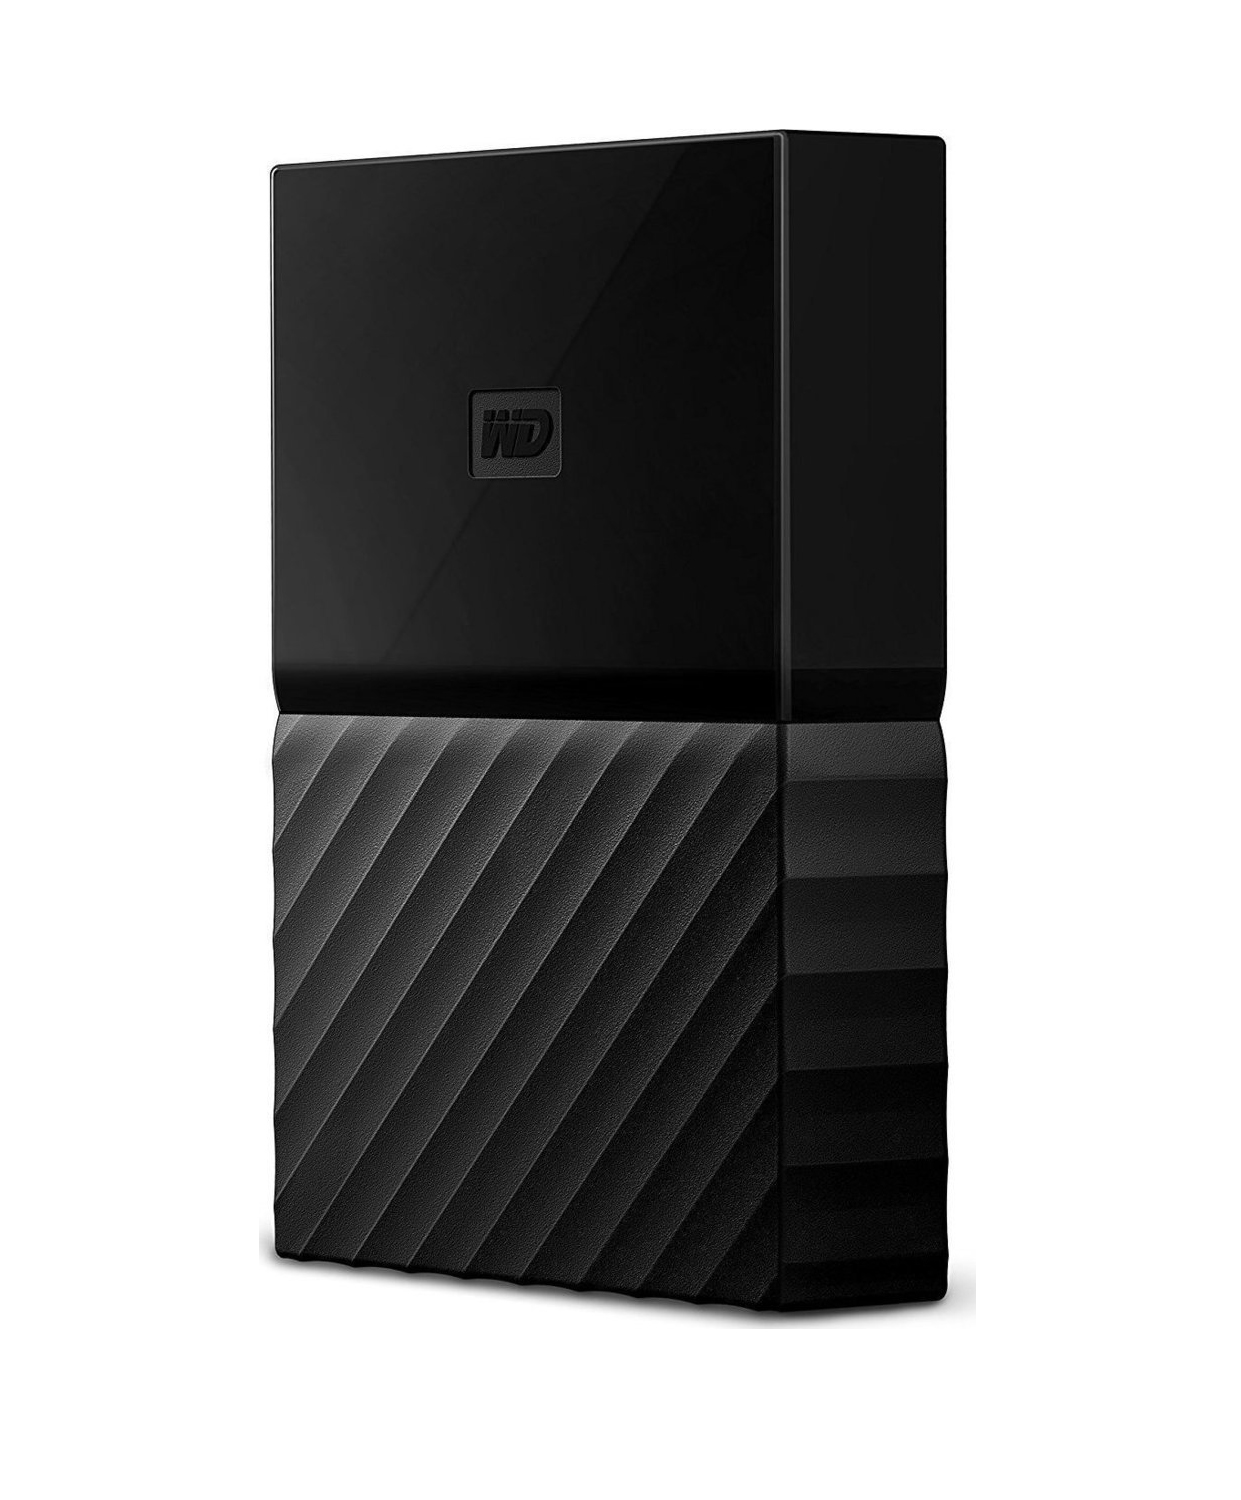 Western Digital My Passport 7mm 2TB WDBS4B0020BBK-WESN Εξωτερικός Σκληρός Δίσκος USB 3.0 Black